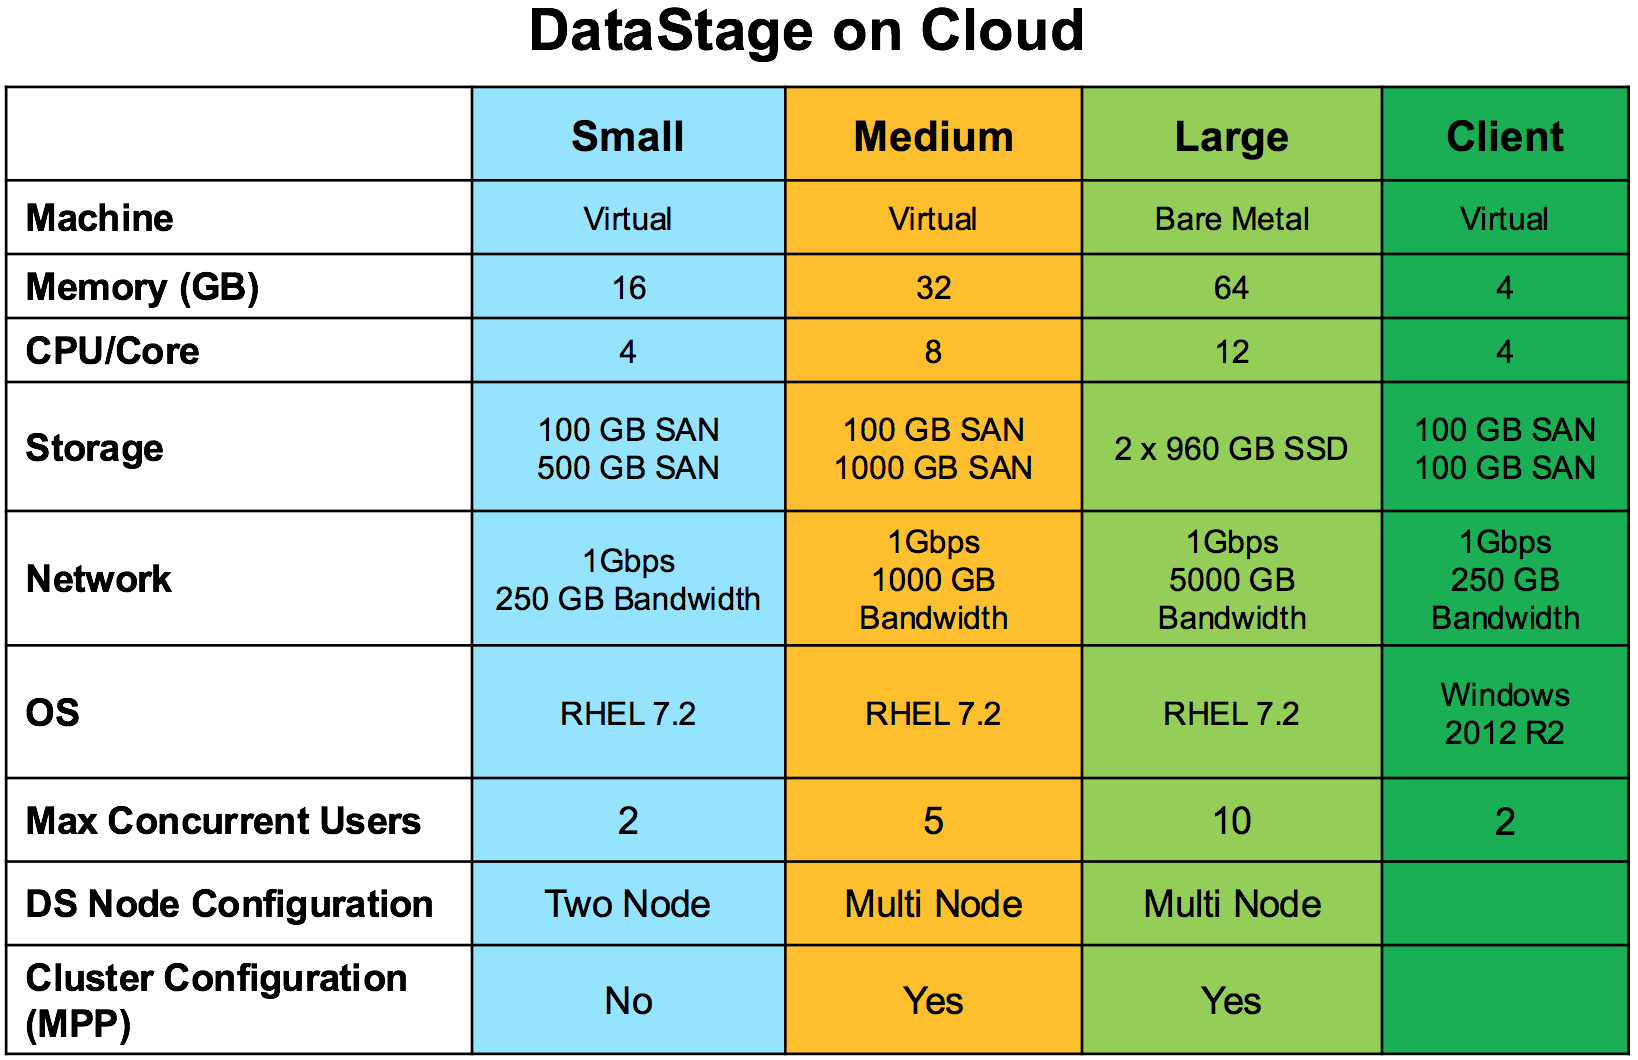 DataStage on Cloud Packages